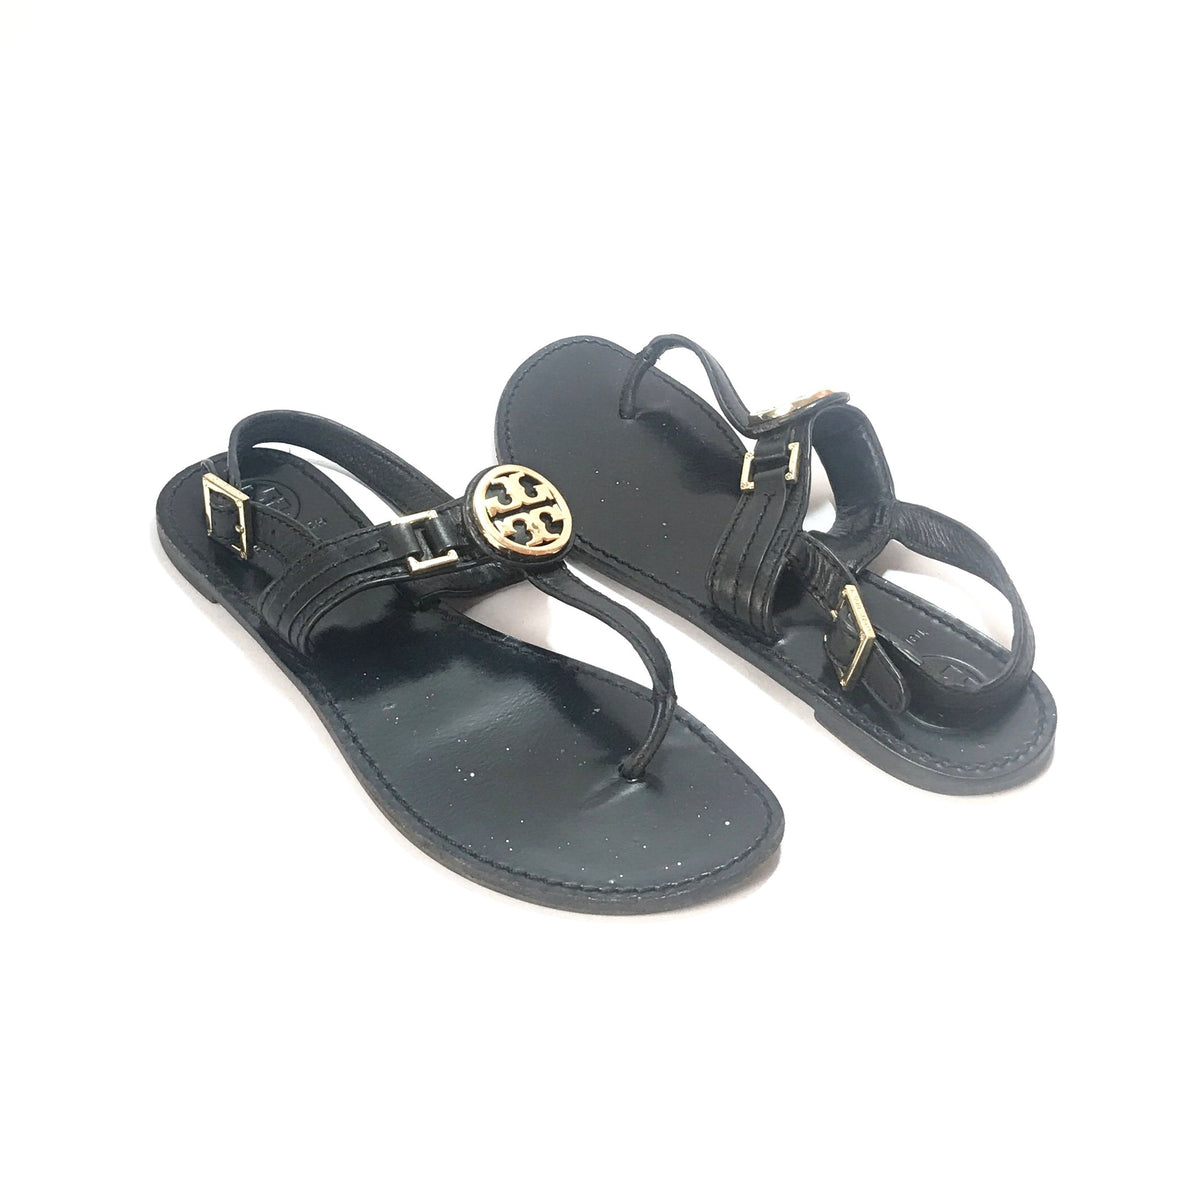 17b816840b4d Tory Burch Cassia Black Flat Thong Sandals